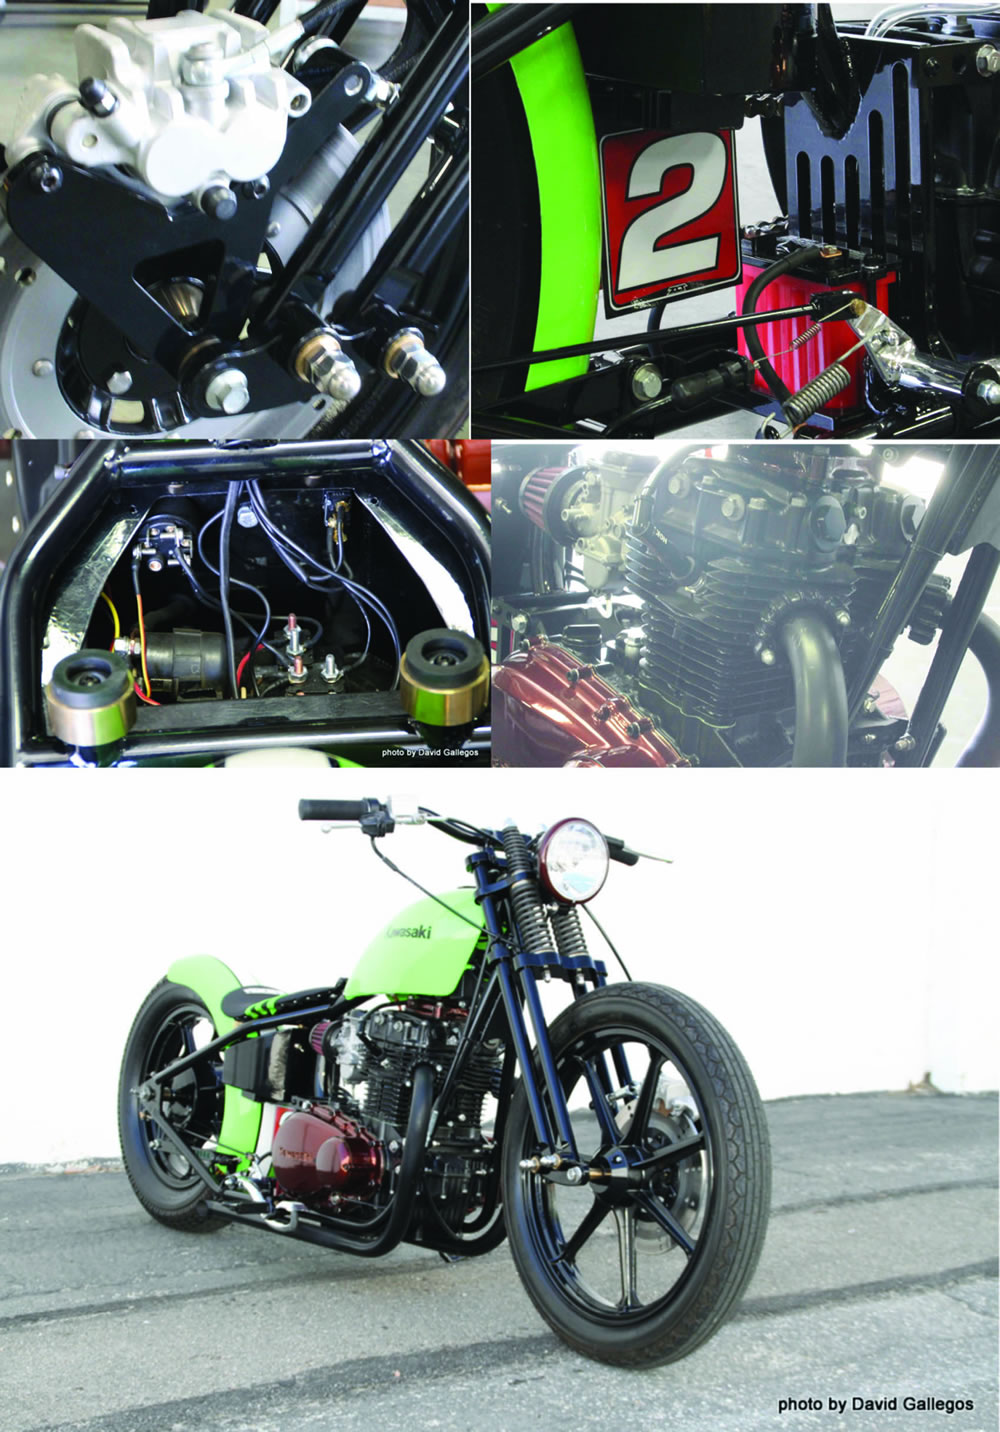 2. GRM 7.4 Lunch_Box 1981 Kawasaki_Pix_4_Text_2